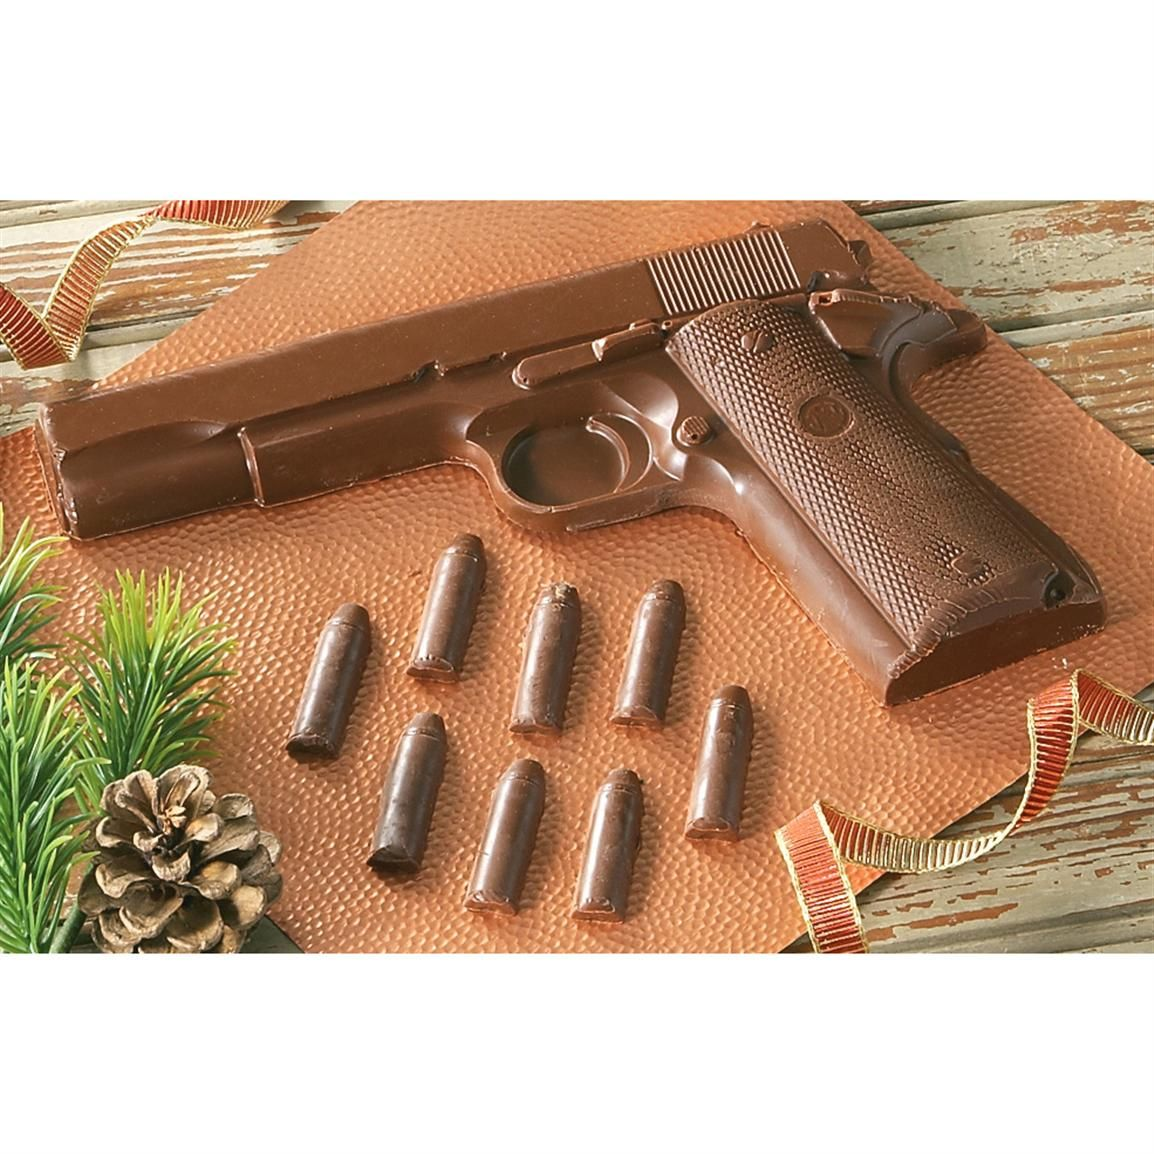 Mmm... Chocolate Colt(R) 1911 with Ammo, Gift Boxed $19.99 ...